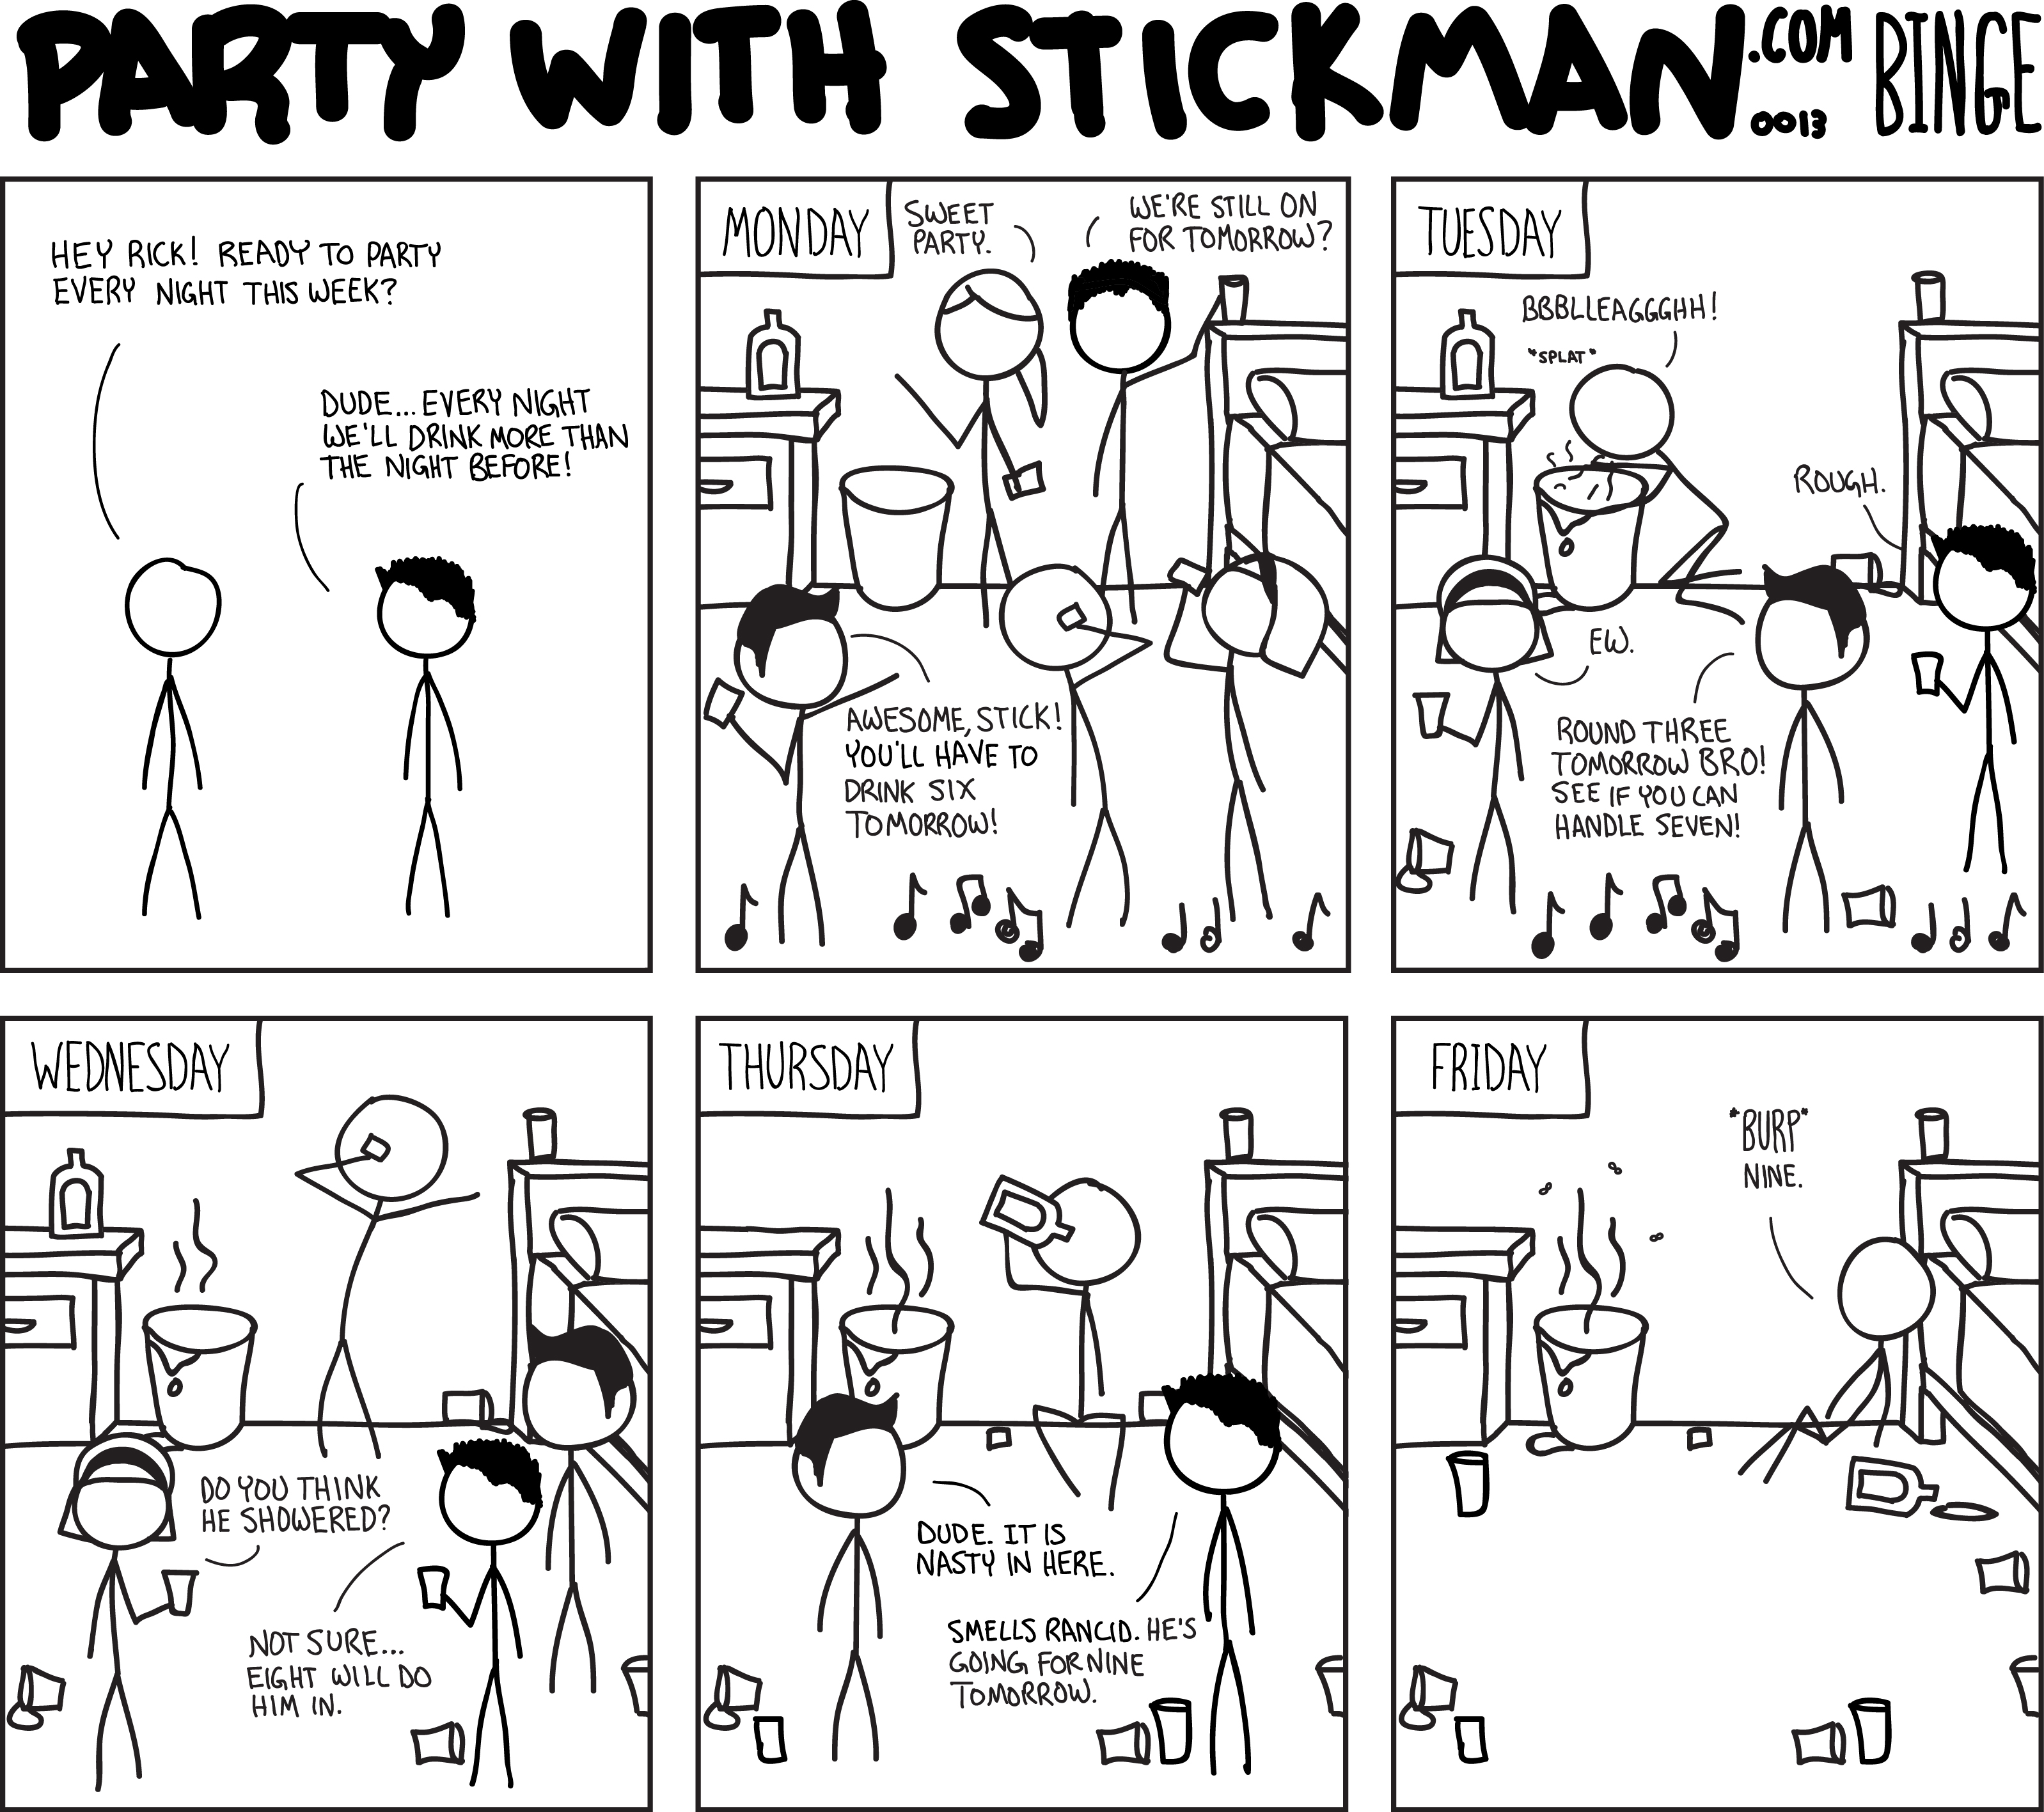 Party With Stickman